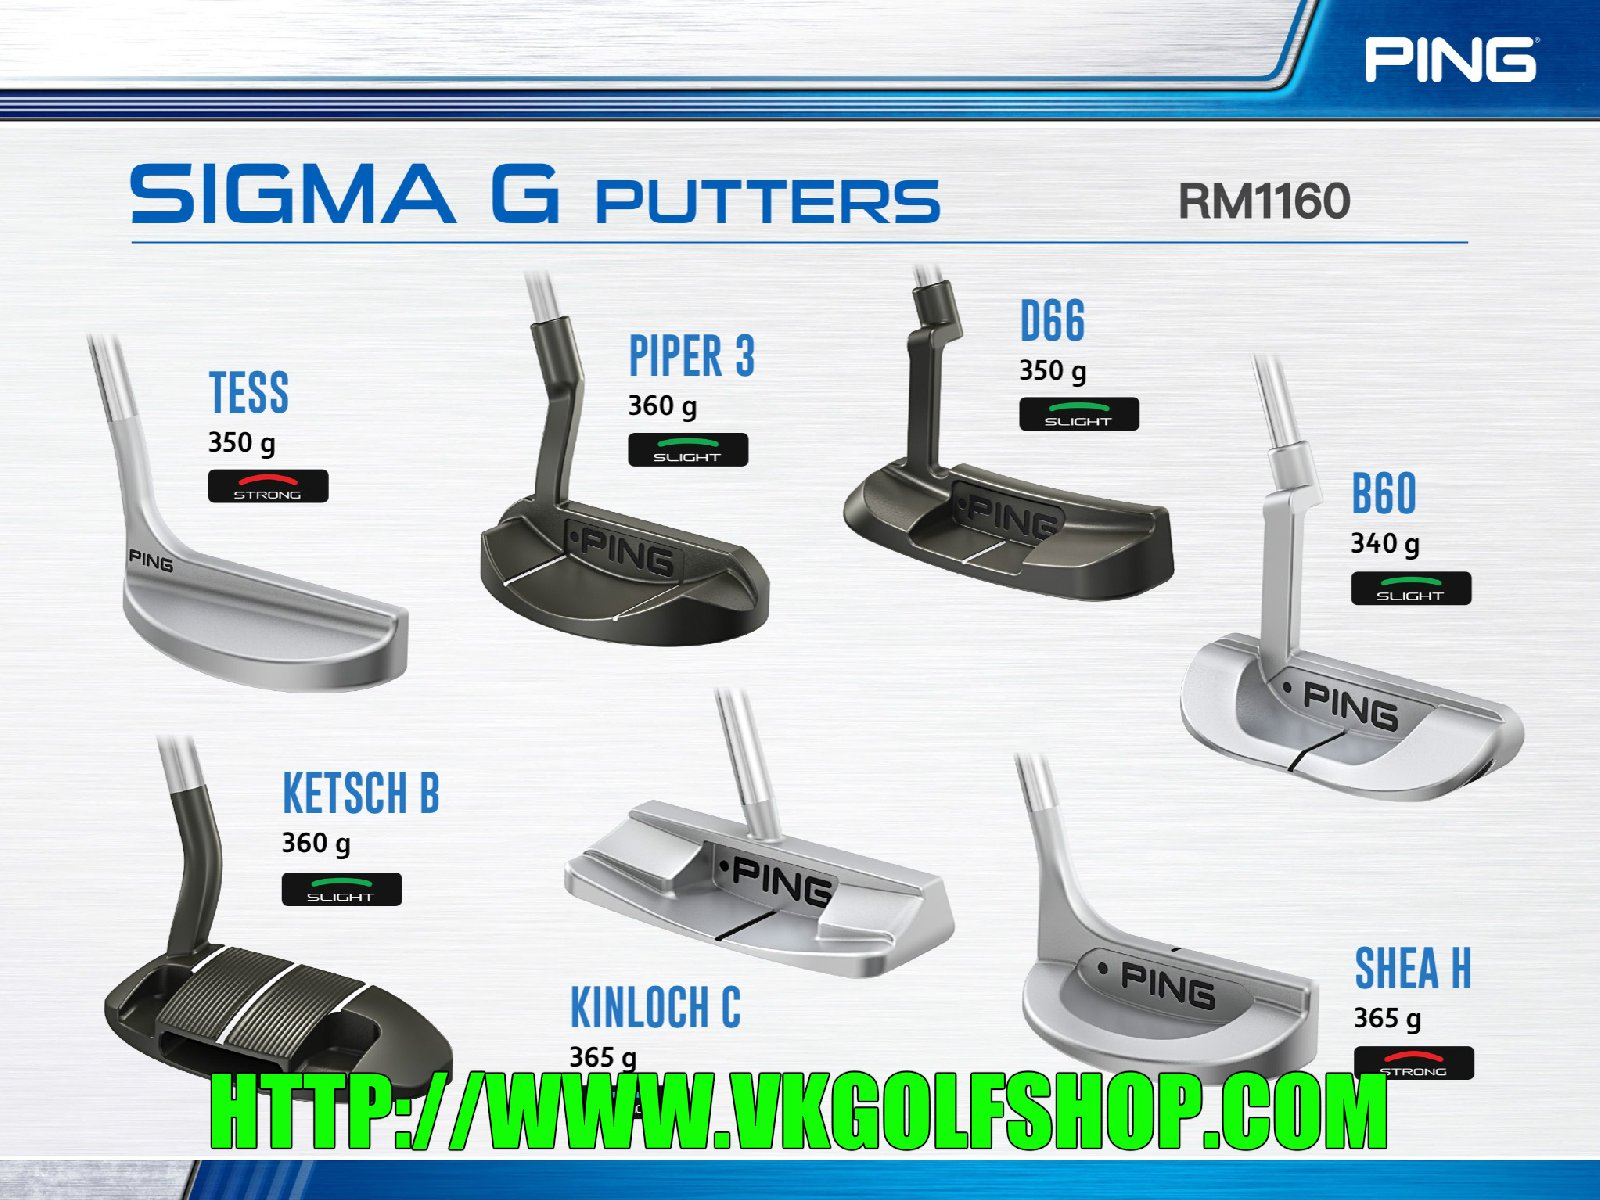 Ping SIGMA G PUTTER MODELS 2017 SERIES